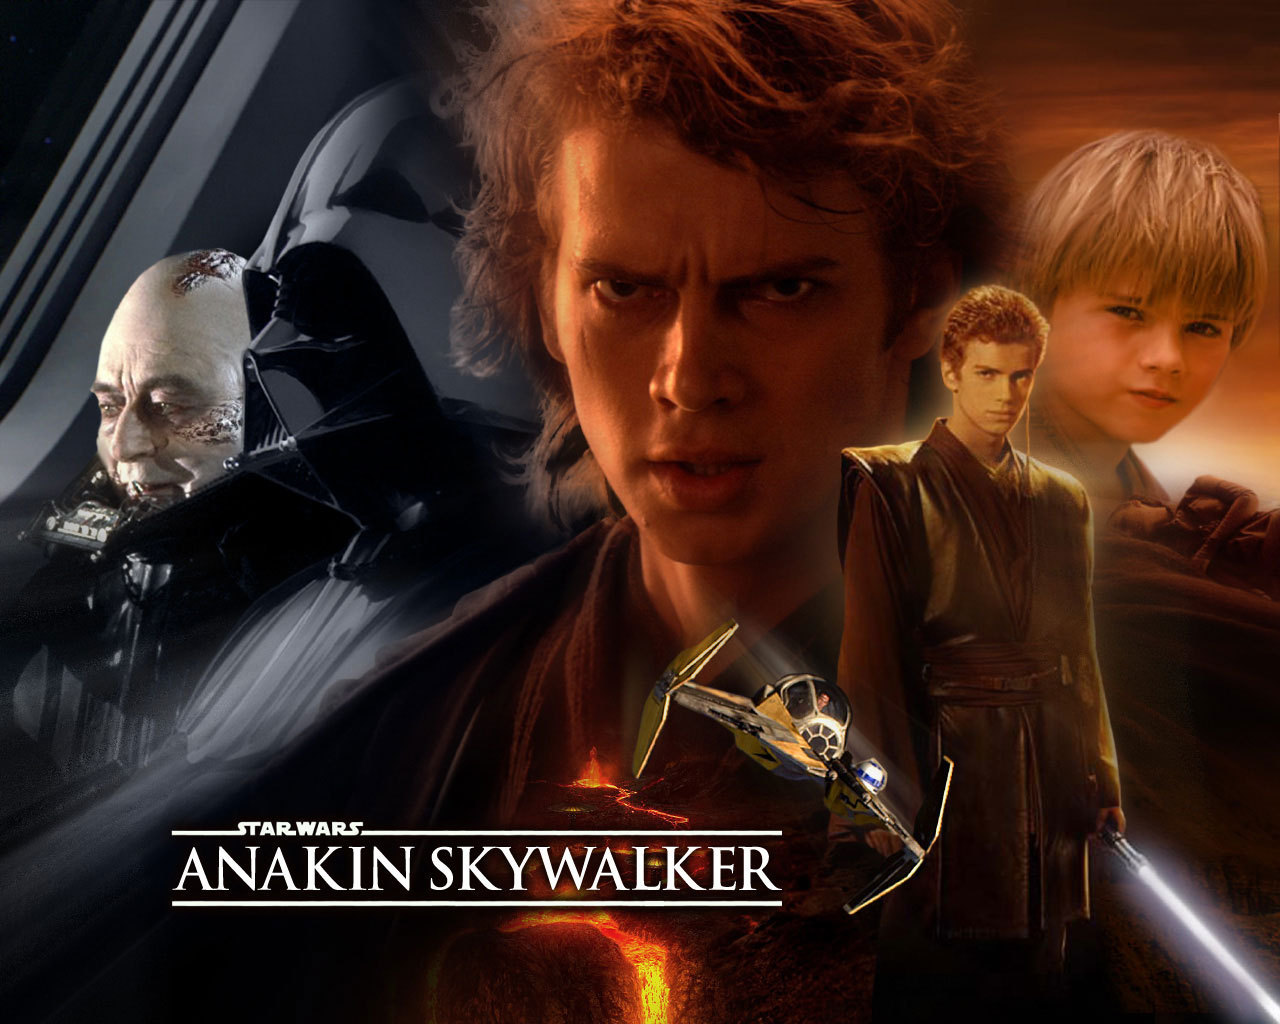 Star Wars Anakin Skywalker Wallpaper: Star Wars Wallpaper (34047984)